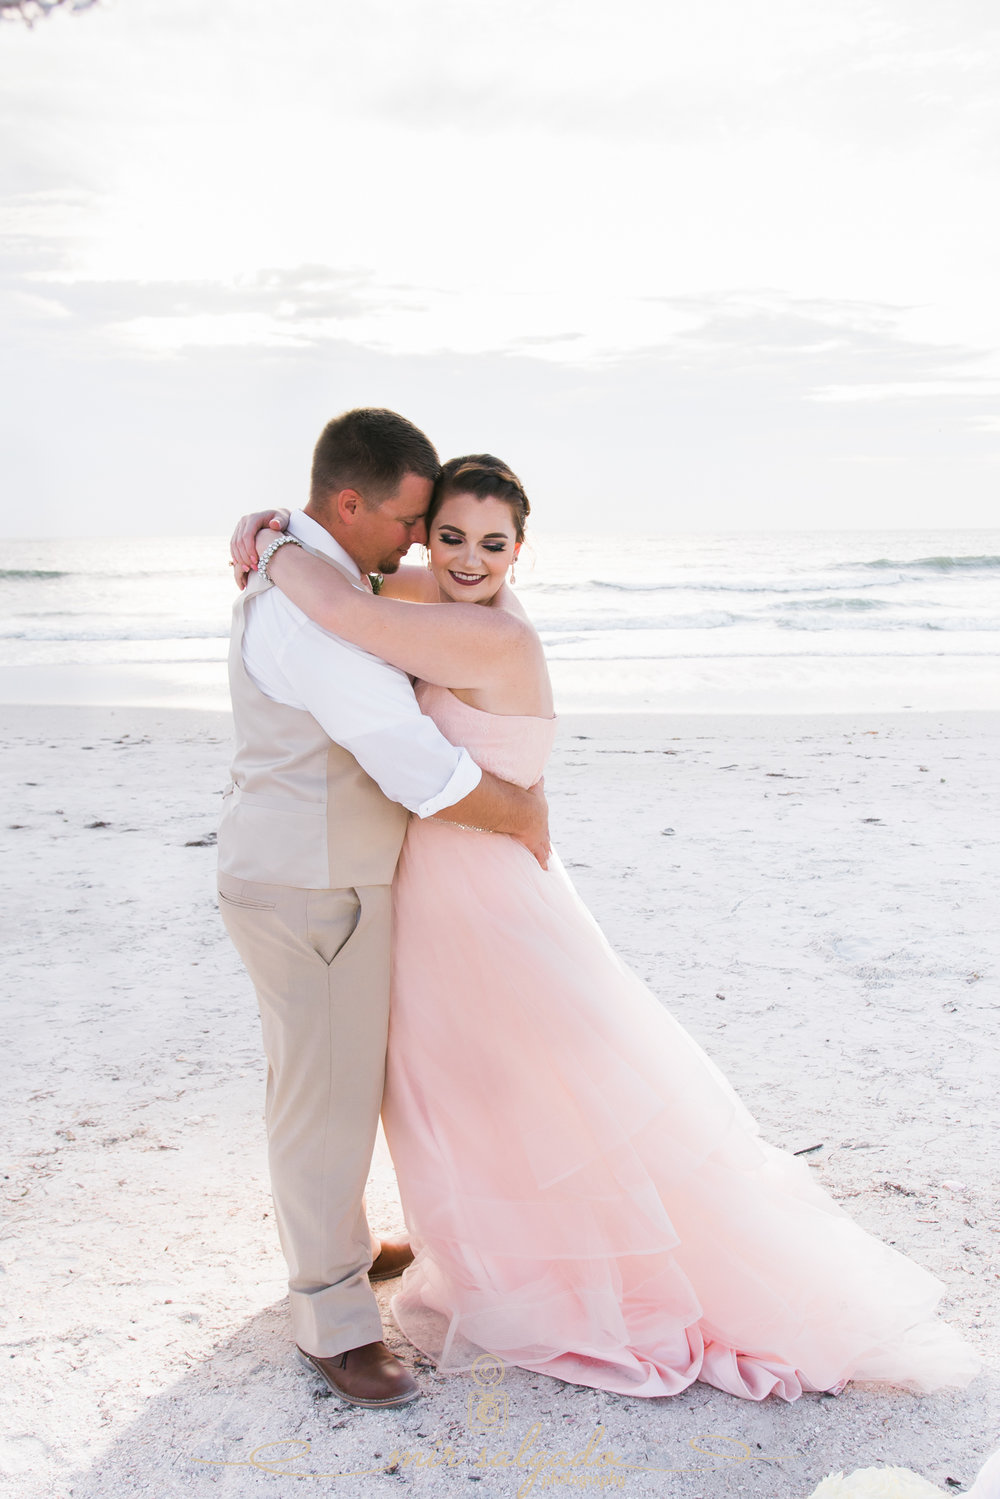 St.Pete-wedding-photographer, Florida-beach-wedding-photo